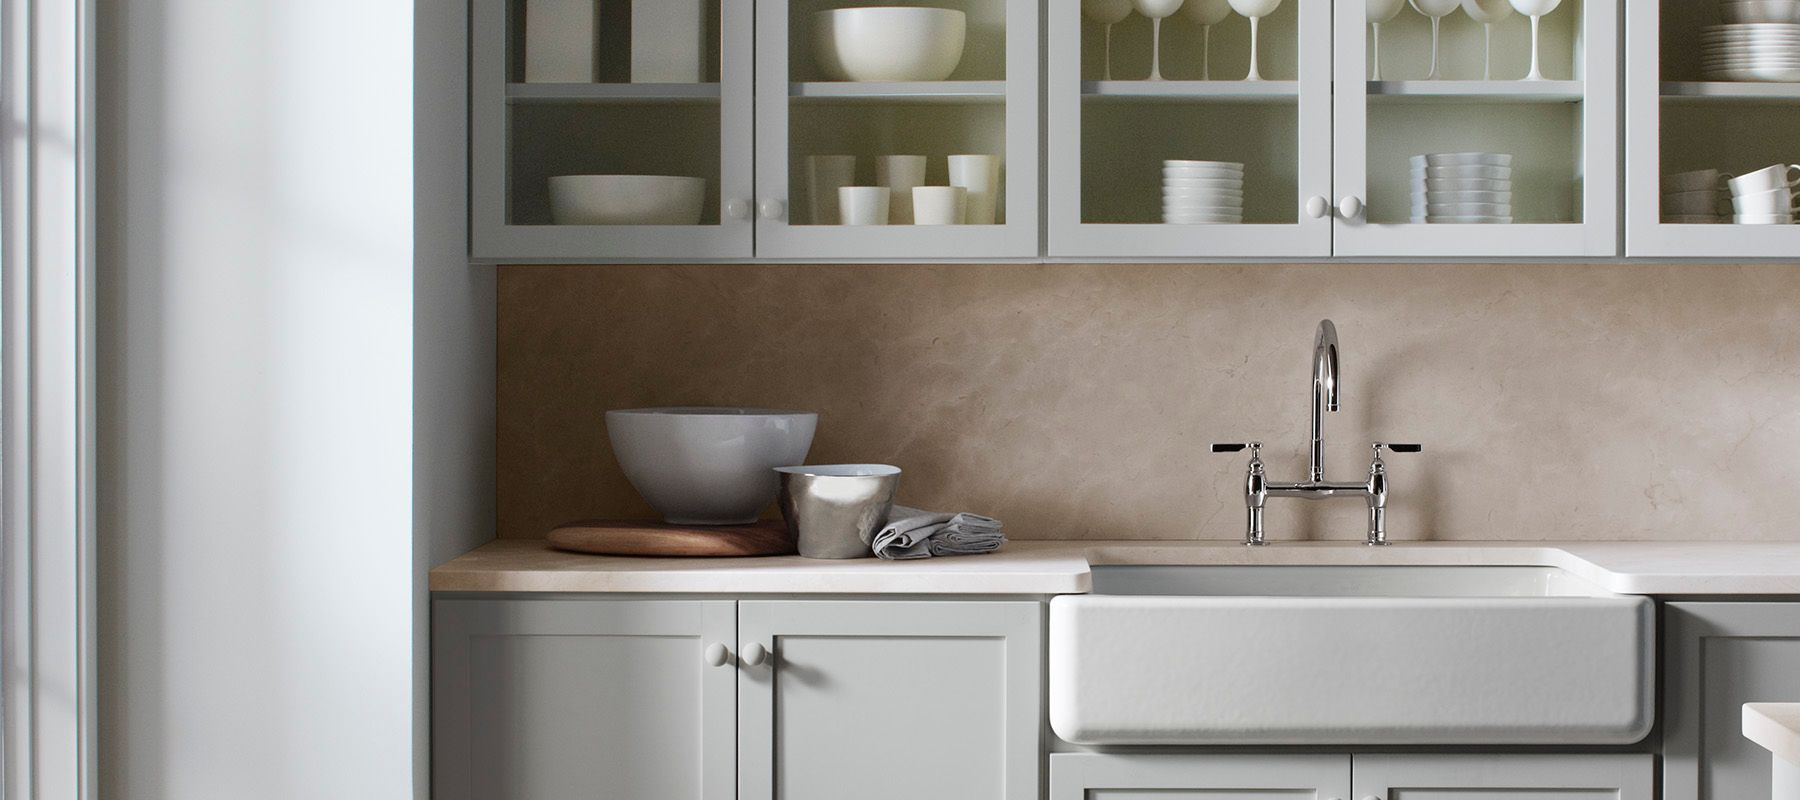 White apron sink